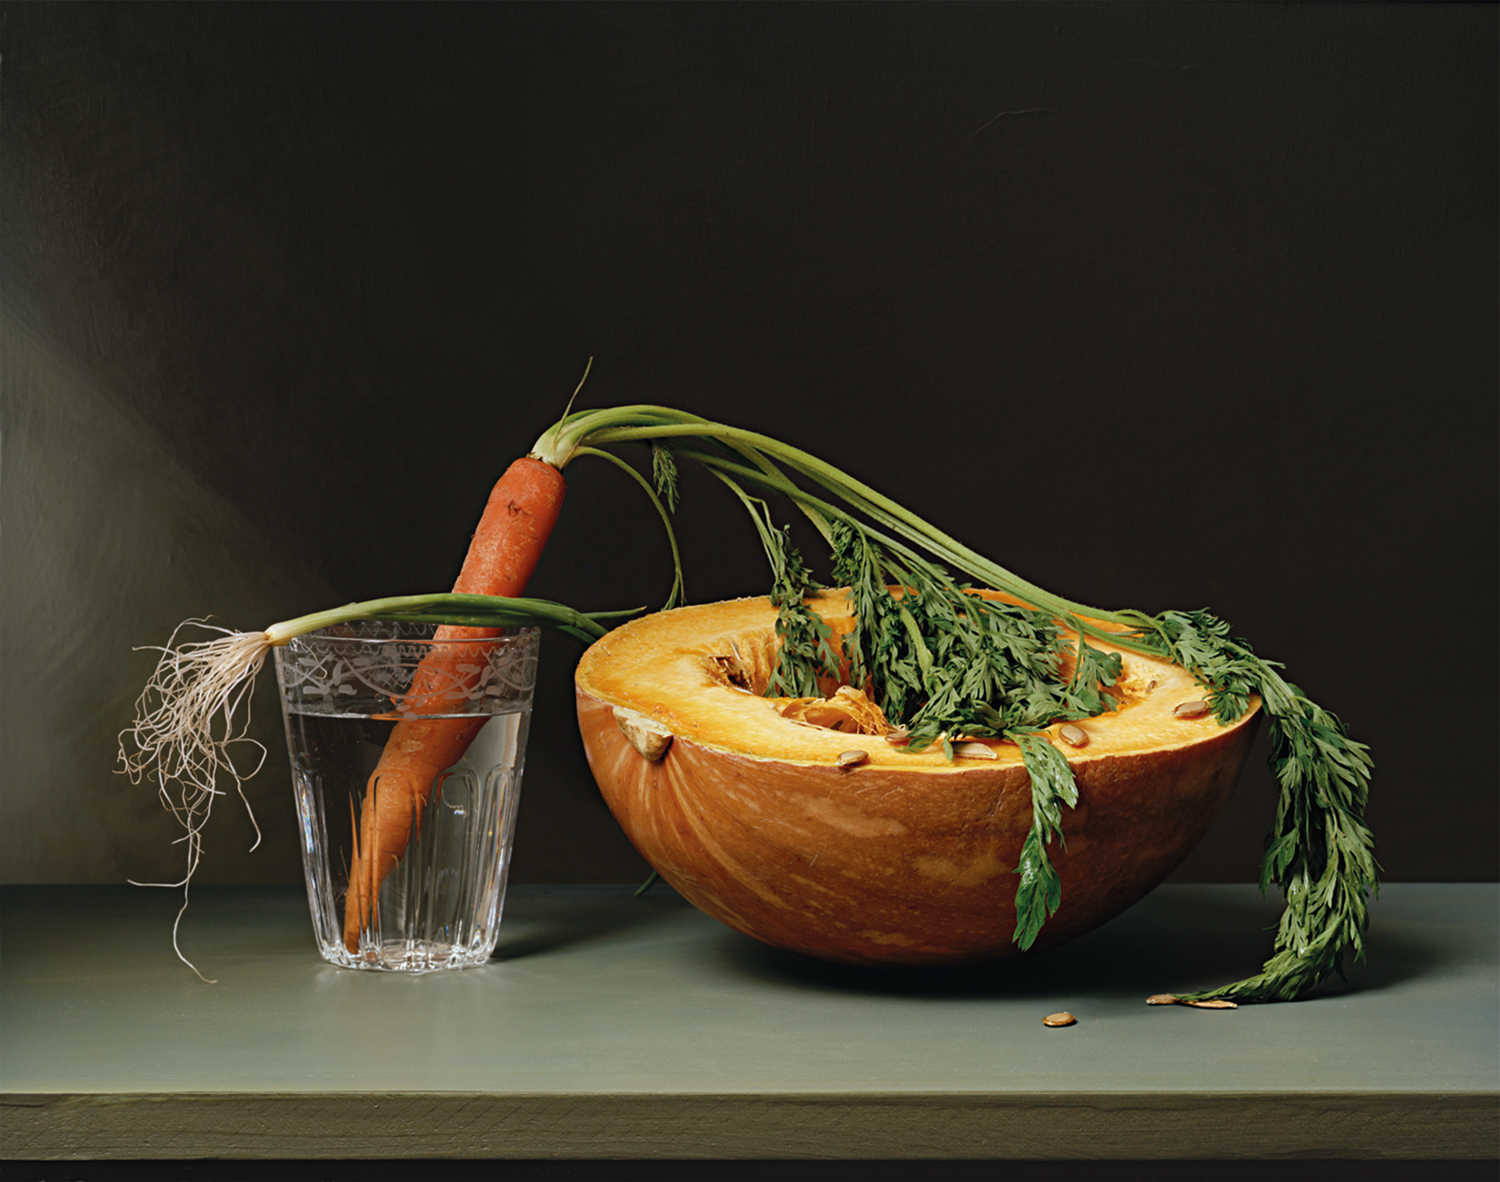 Plate 27 - Carrot and Squash